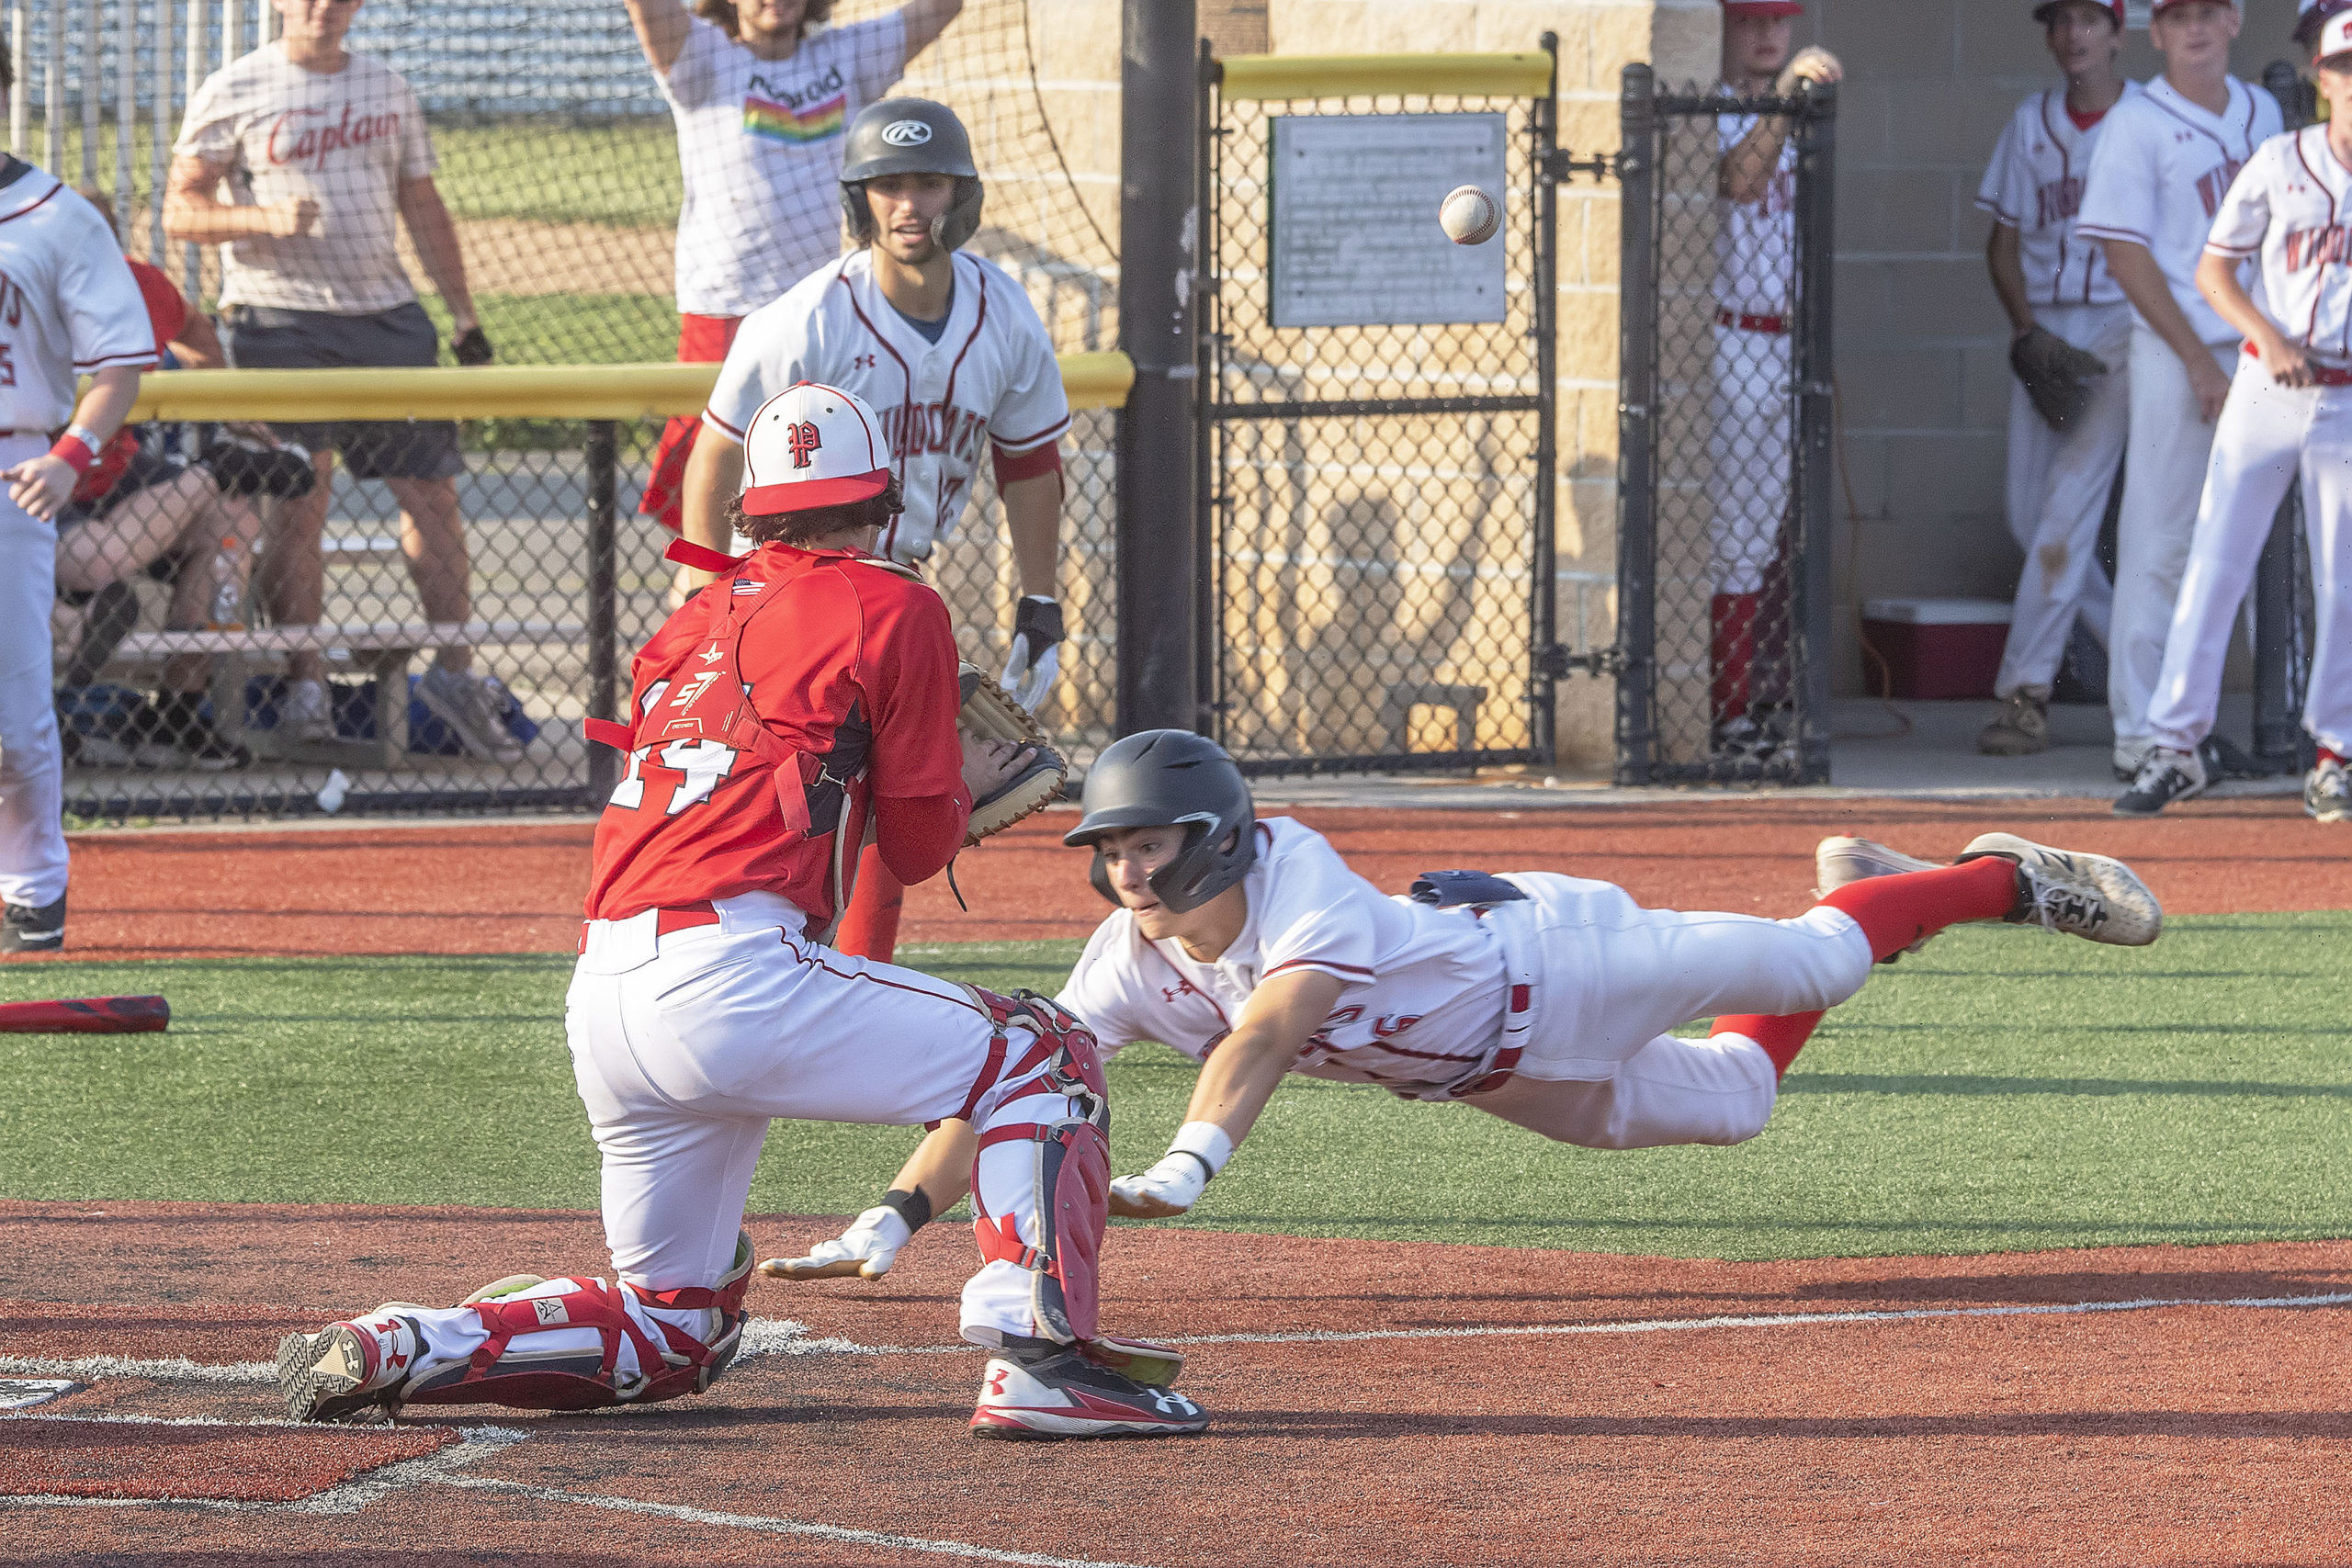 A Wheatley runner dives for home as the ball caroms off Pierson catcher Tucker Schiavoni's glove.